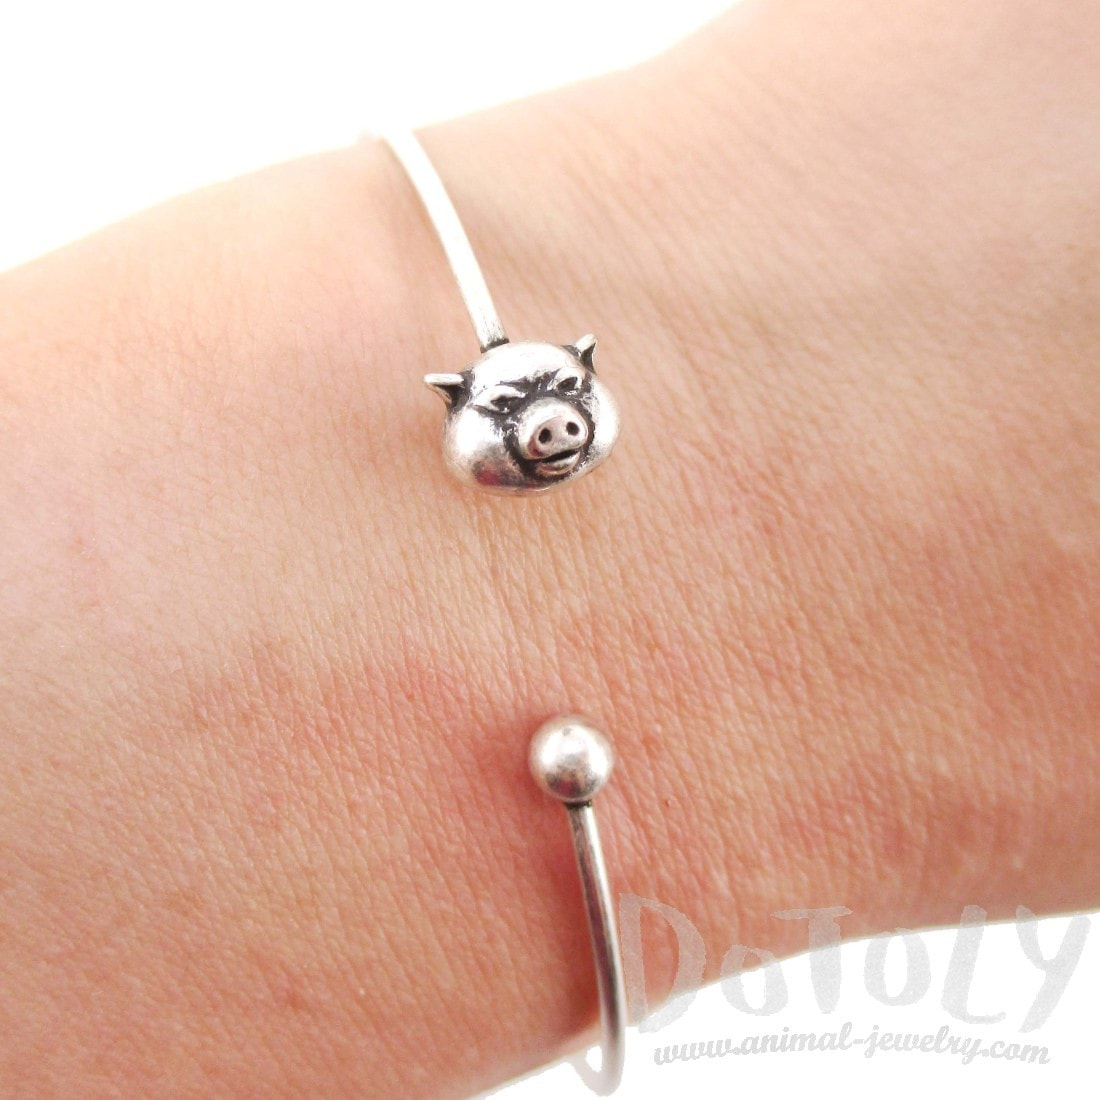 Minimal Piglet Pig Charm Bangle Bracelet Cuff in Silver | DOTOLY